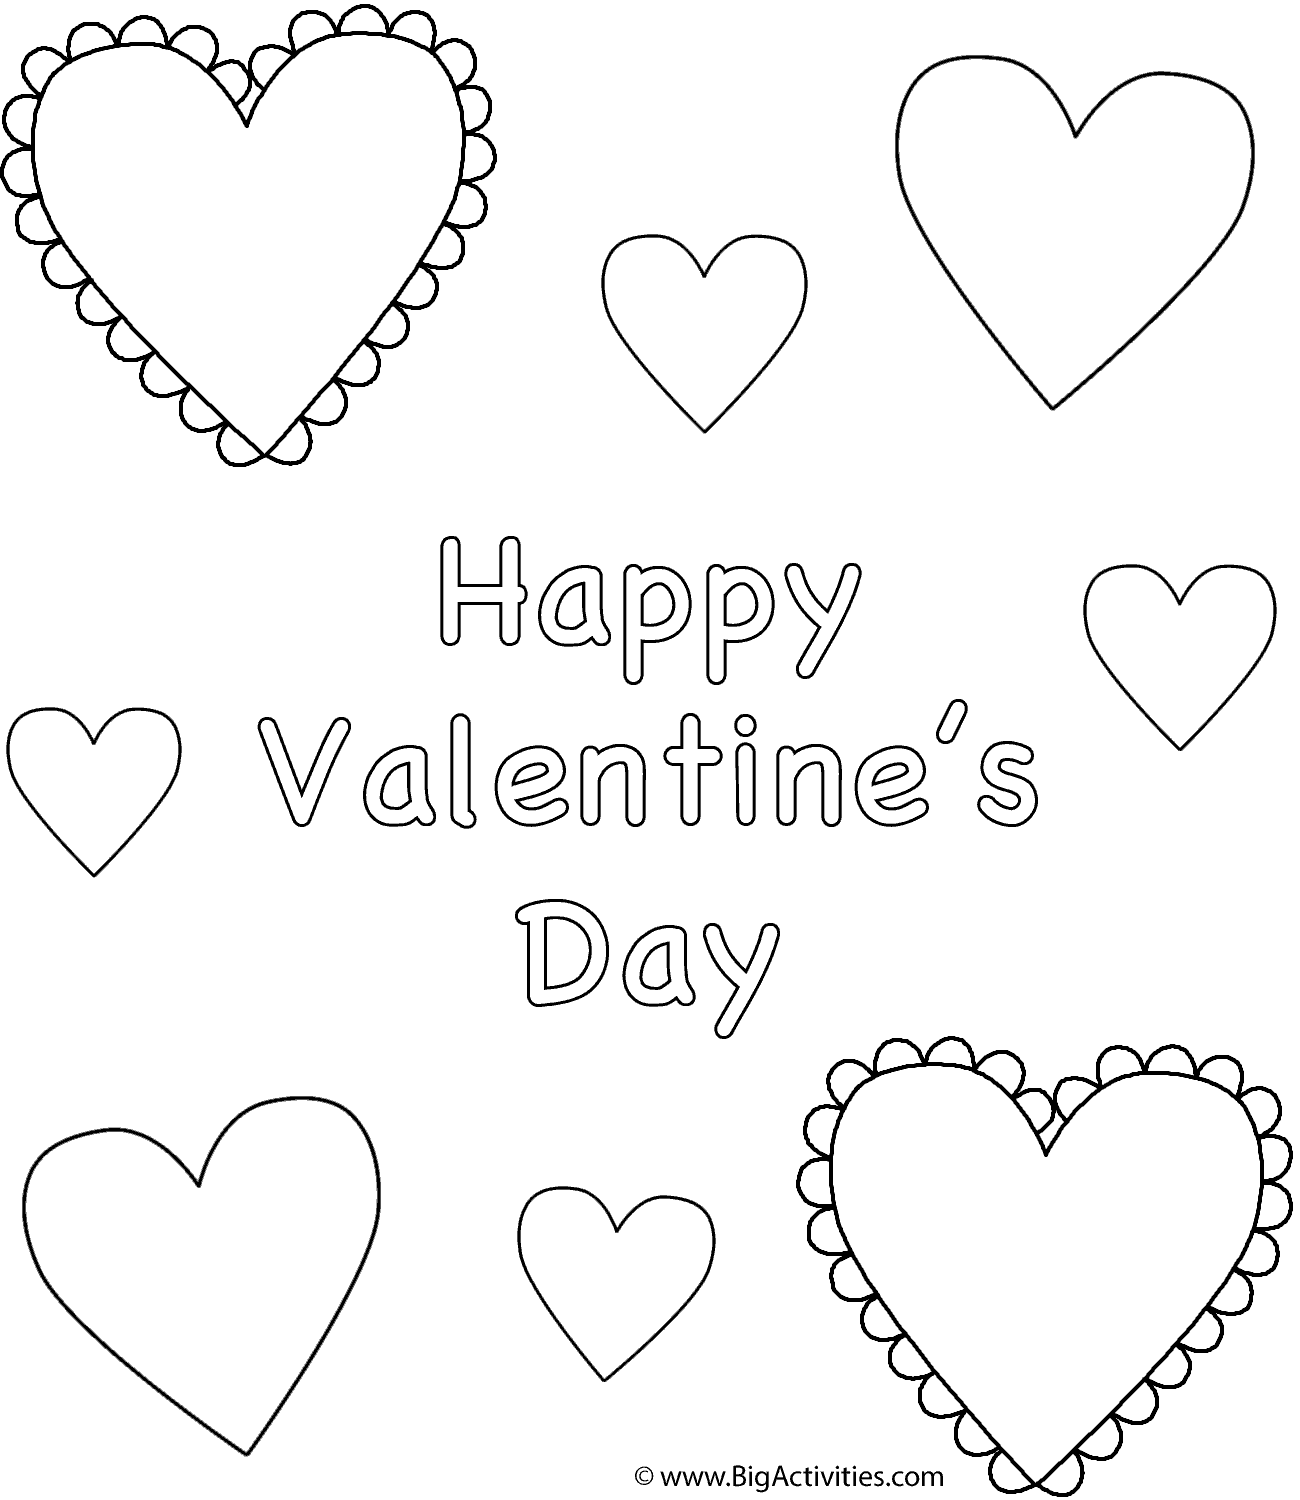 heart to color heart coloring pages 3 coloring pages to print to color heart